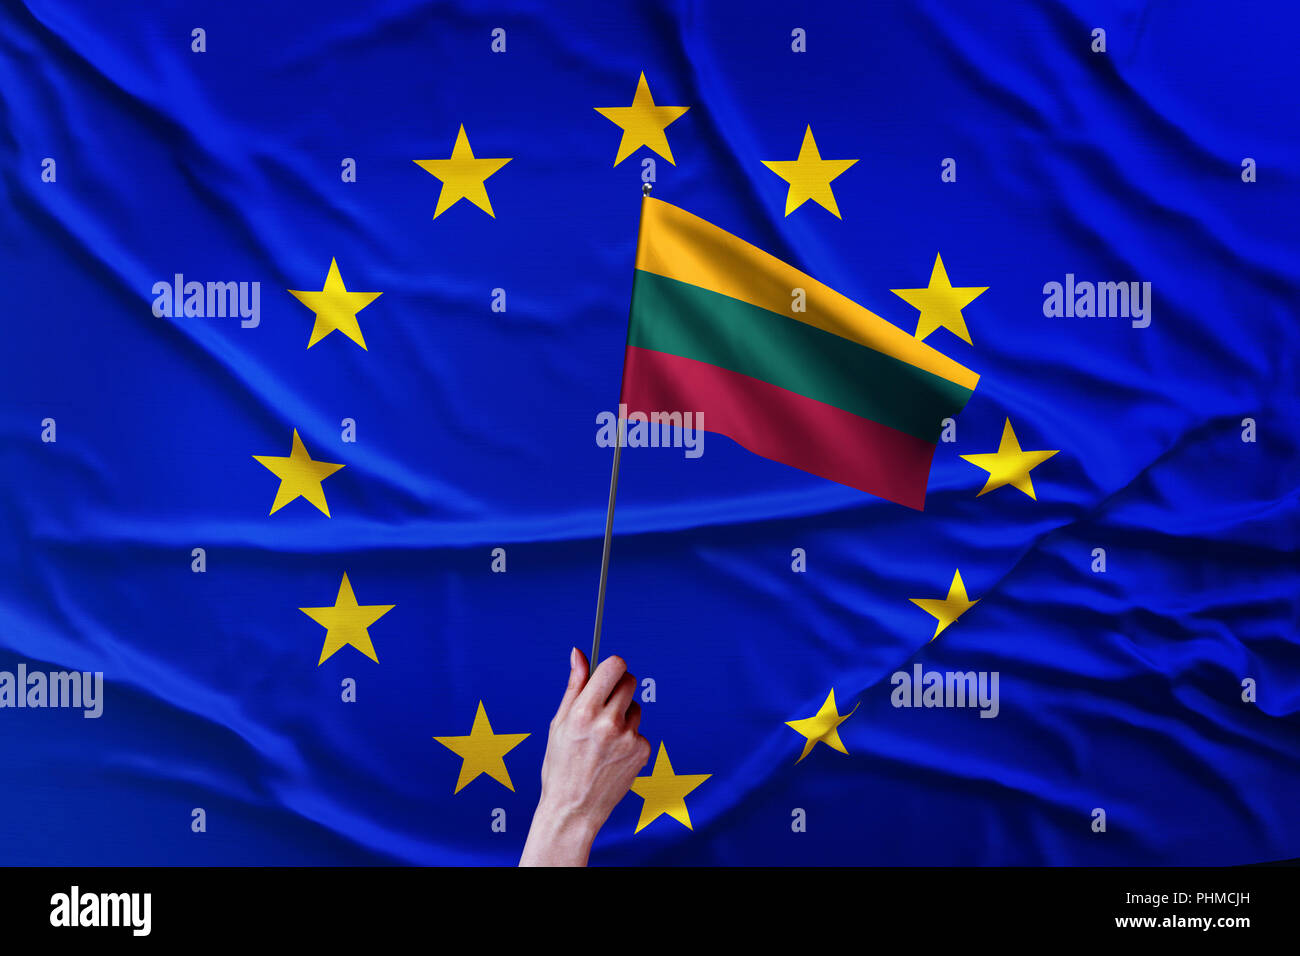 Flag of the European Union and Lithuania - Stock Image